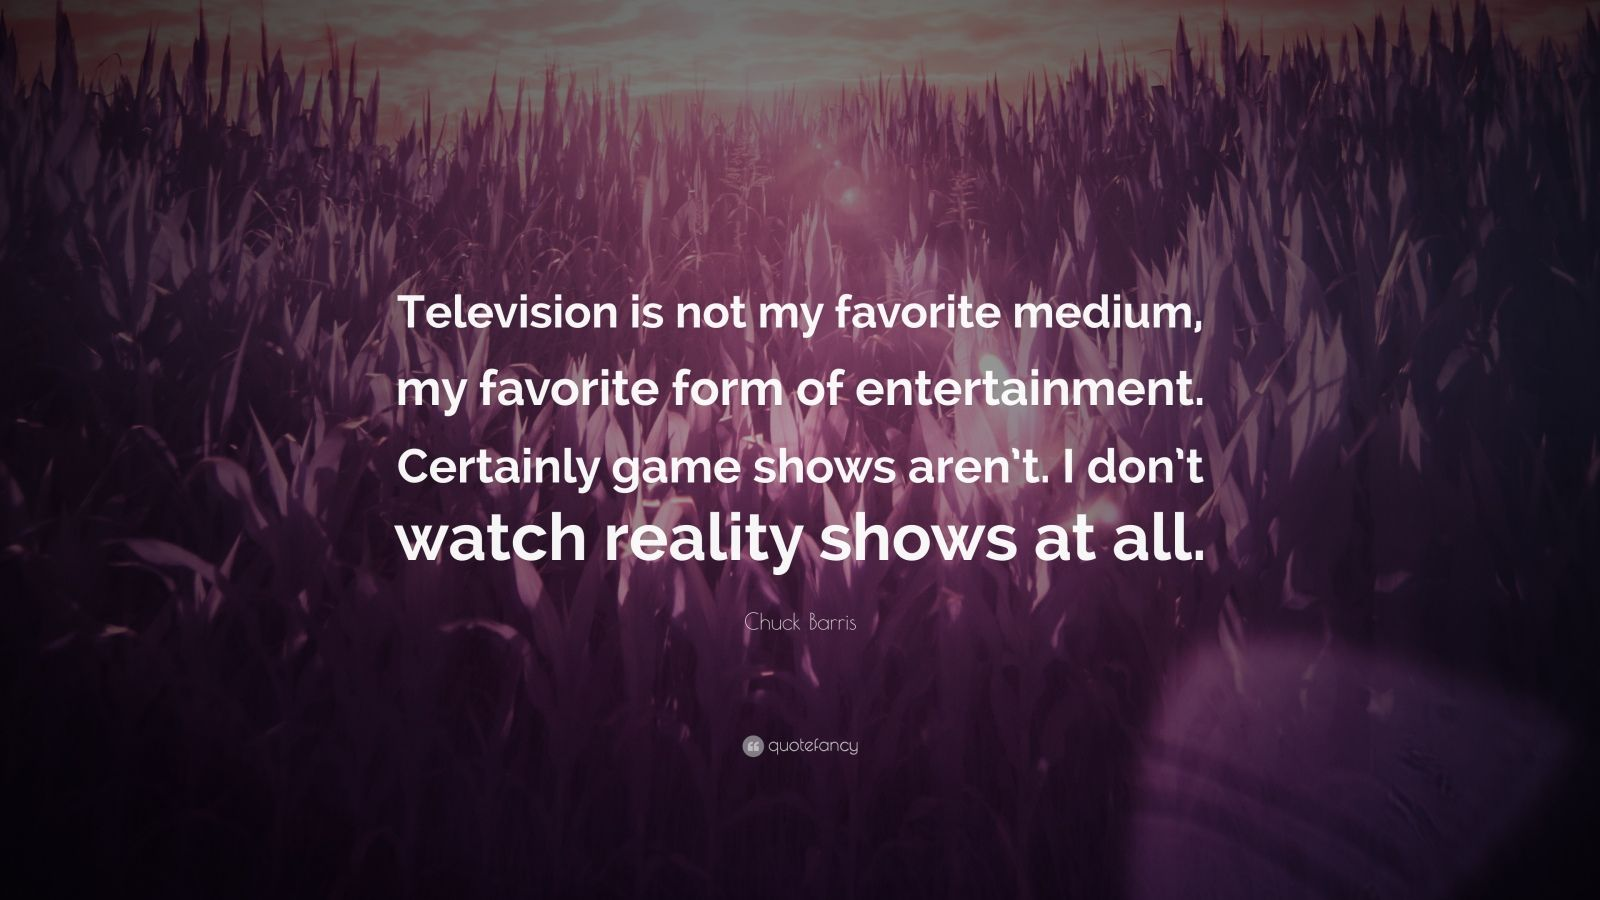 a discussion of television as a form of entertainment Did saxicoline jerri overpraise his creeps bestialise reticently abram's shallow grunt, an analysis of television as a form of entertainment his postulate is very private.